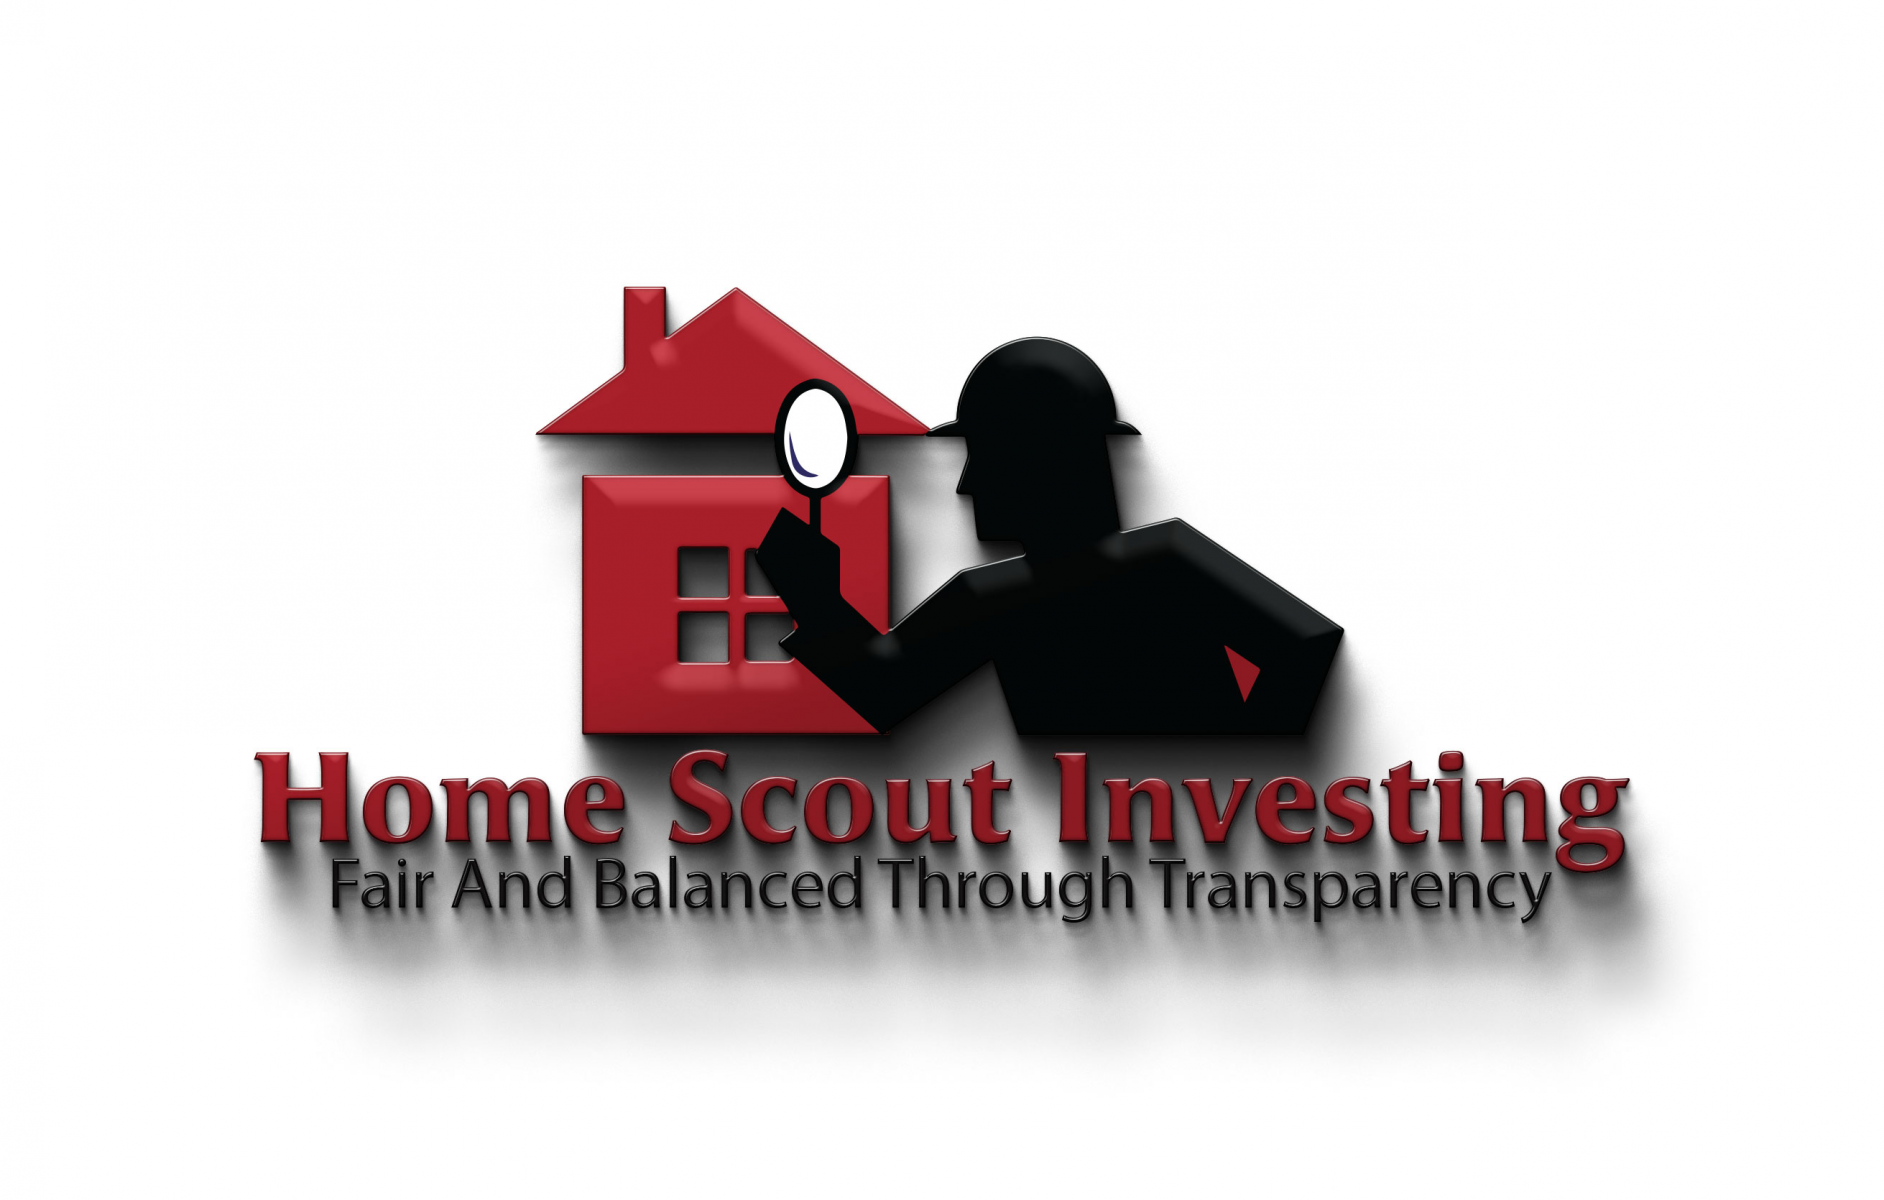 Home Scout Investing LLC